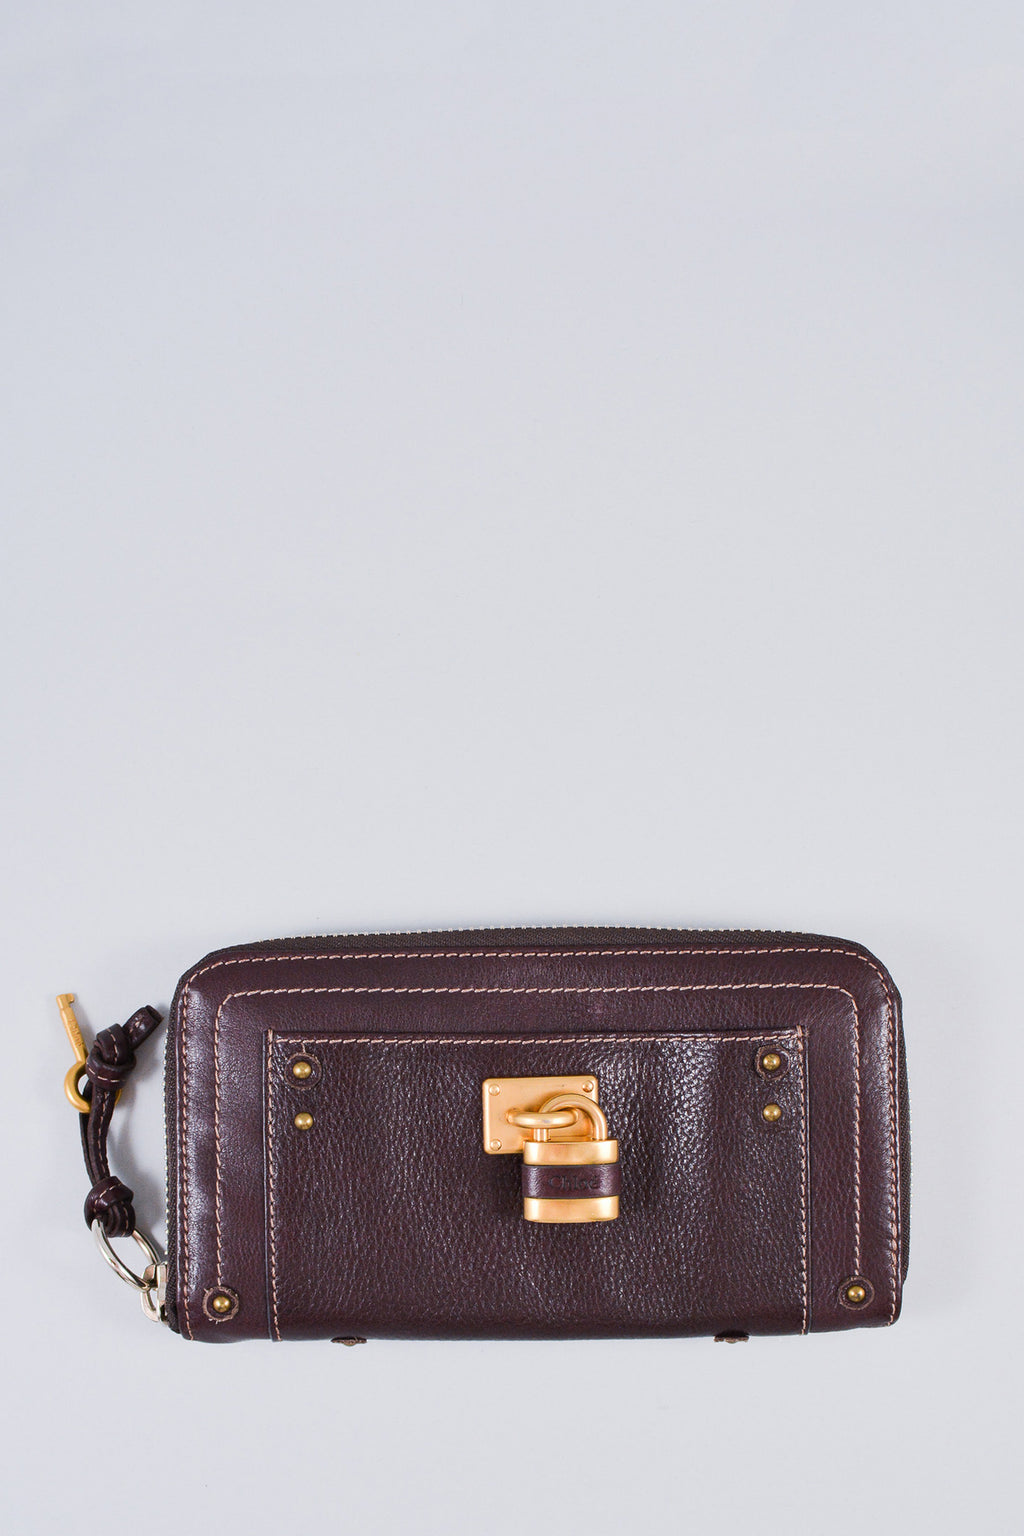 Chloe Brown Paddington Zip-Around Wallet